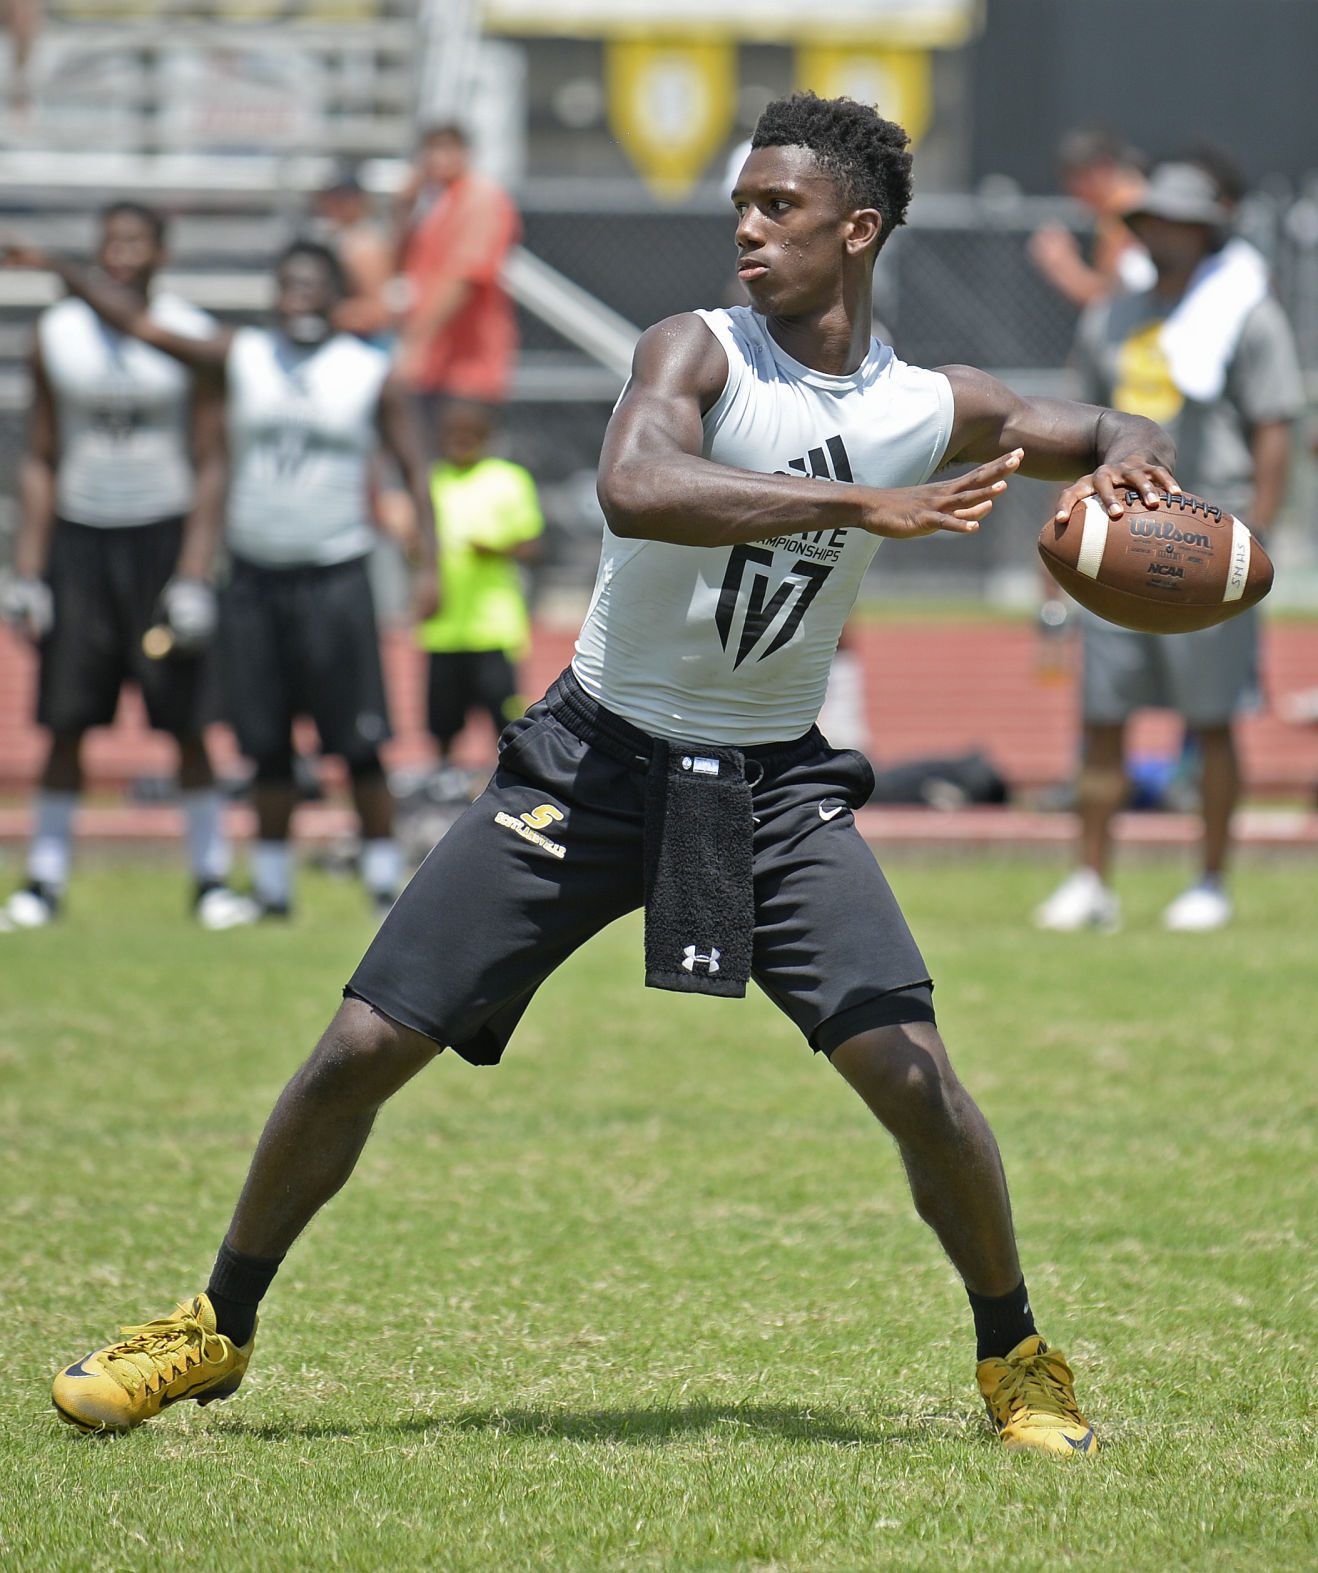 Growing up quickly: Scotlandville QB Levi Lewis is ready for his ...